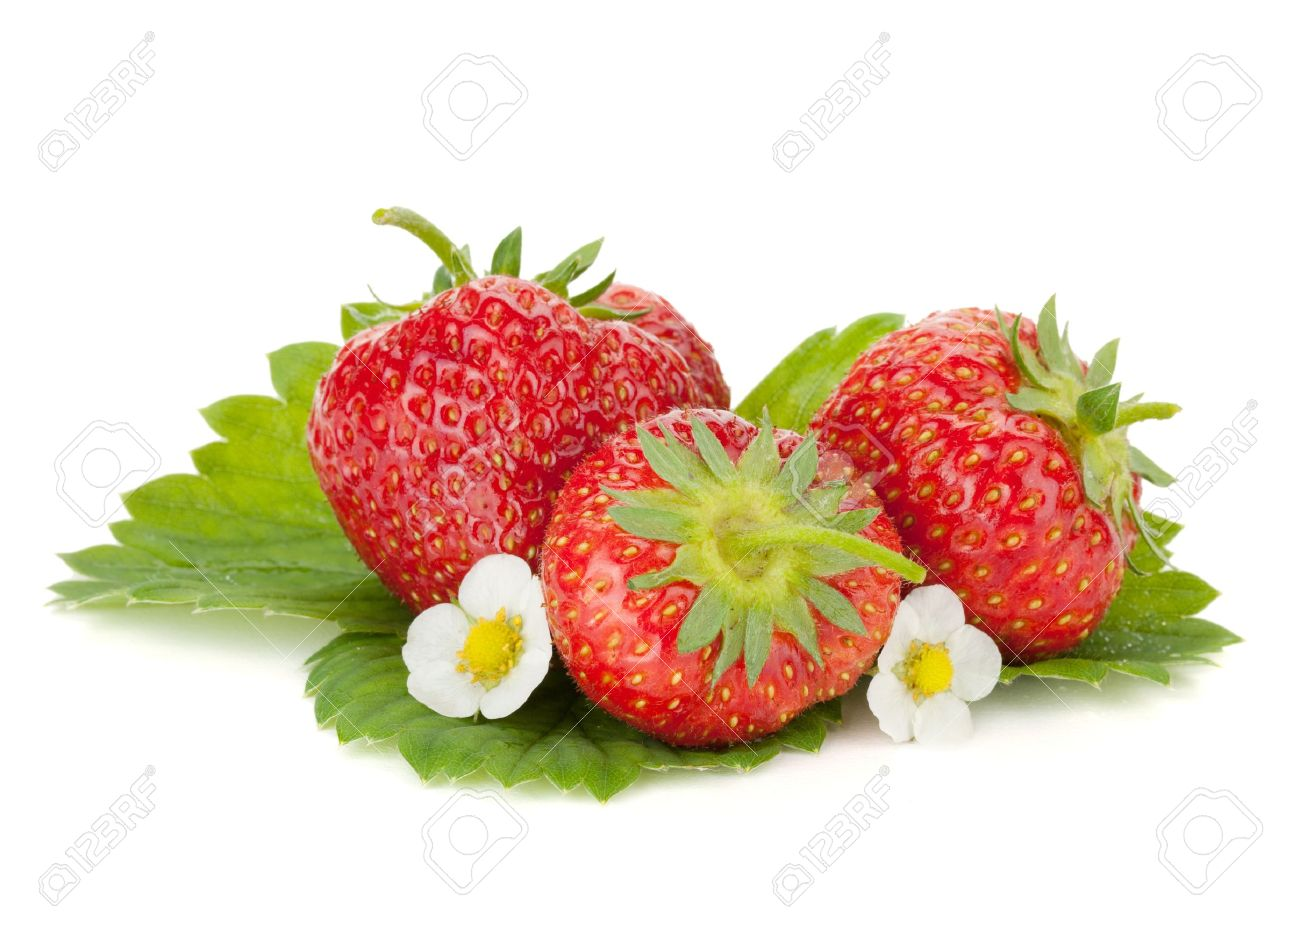 Three strawberry fruits with flowers and green leaves. Isolated on white background Stock Photo - 9960761